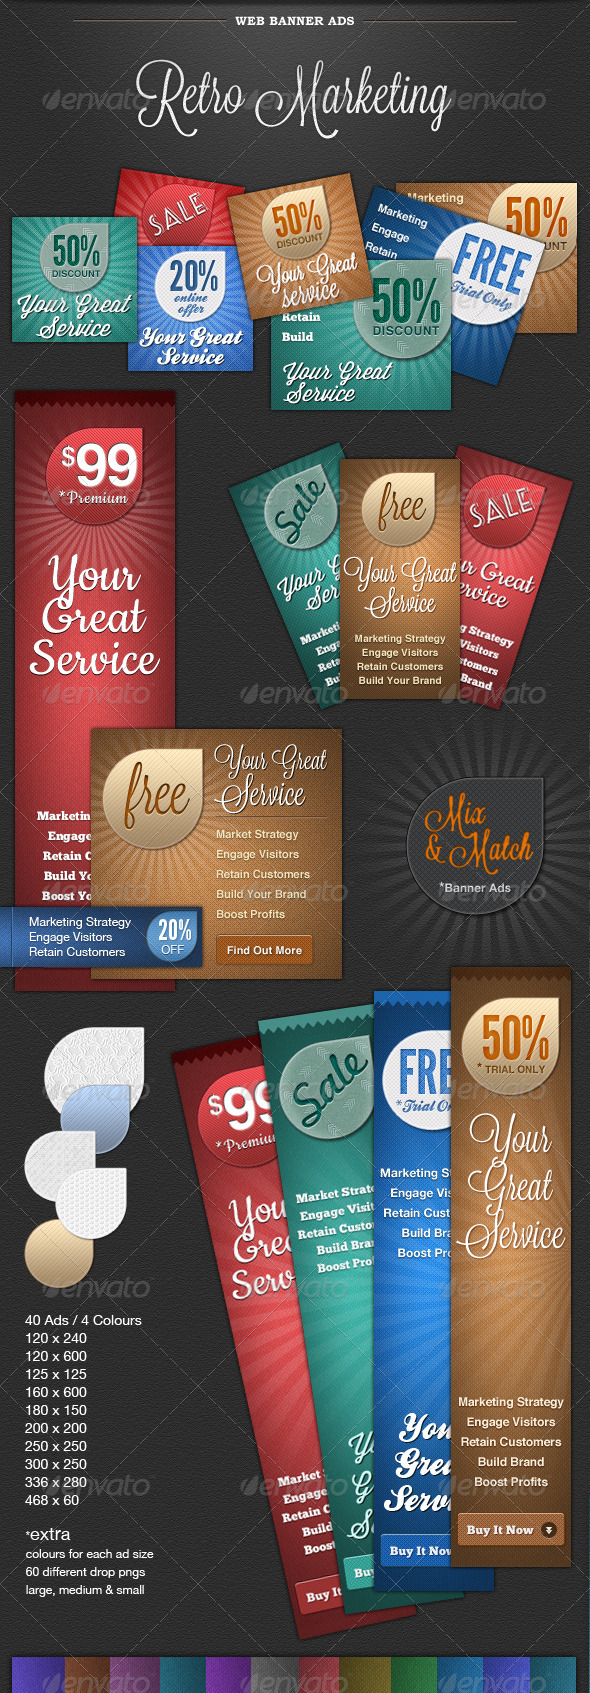 Web Banner Ads - Retro Marketing - Banners & Ads Web Elements